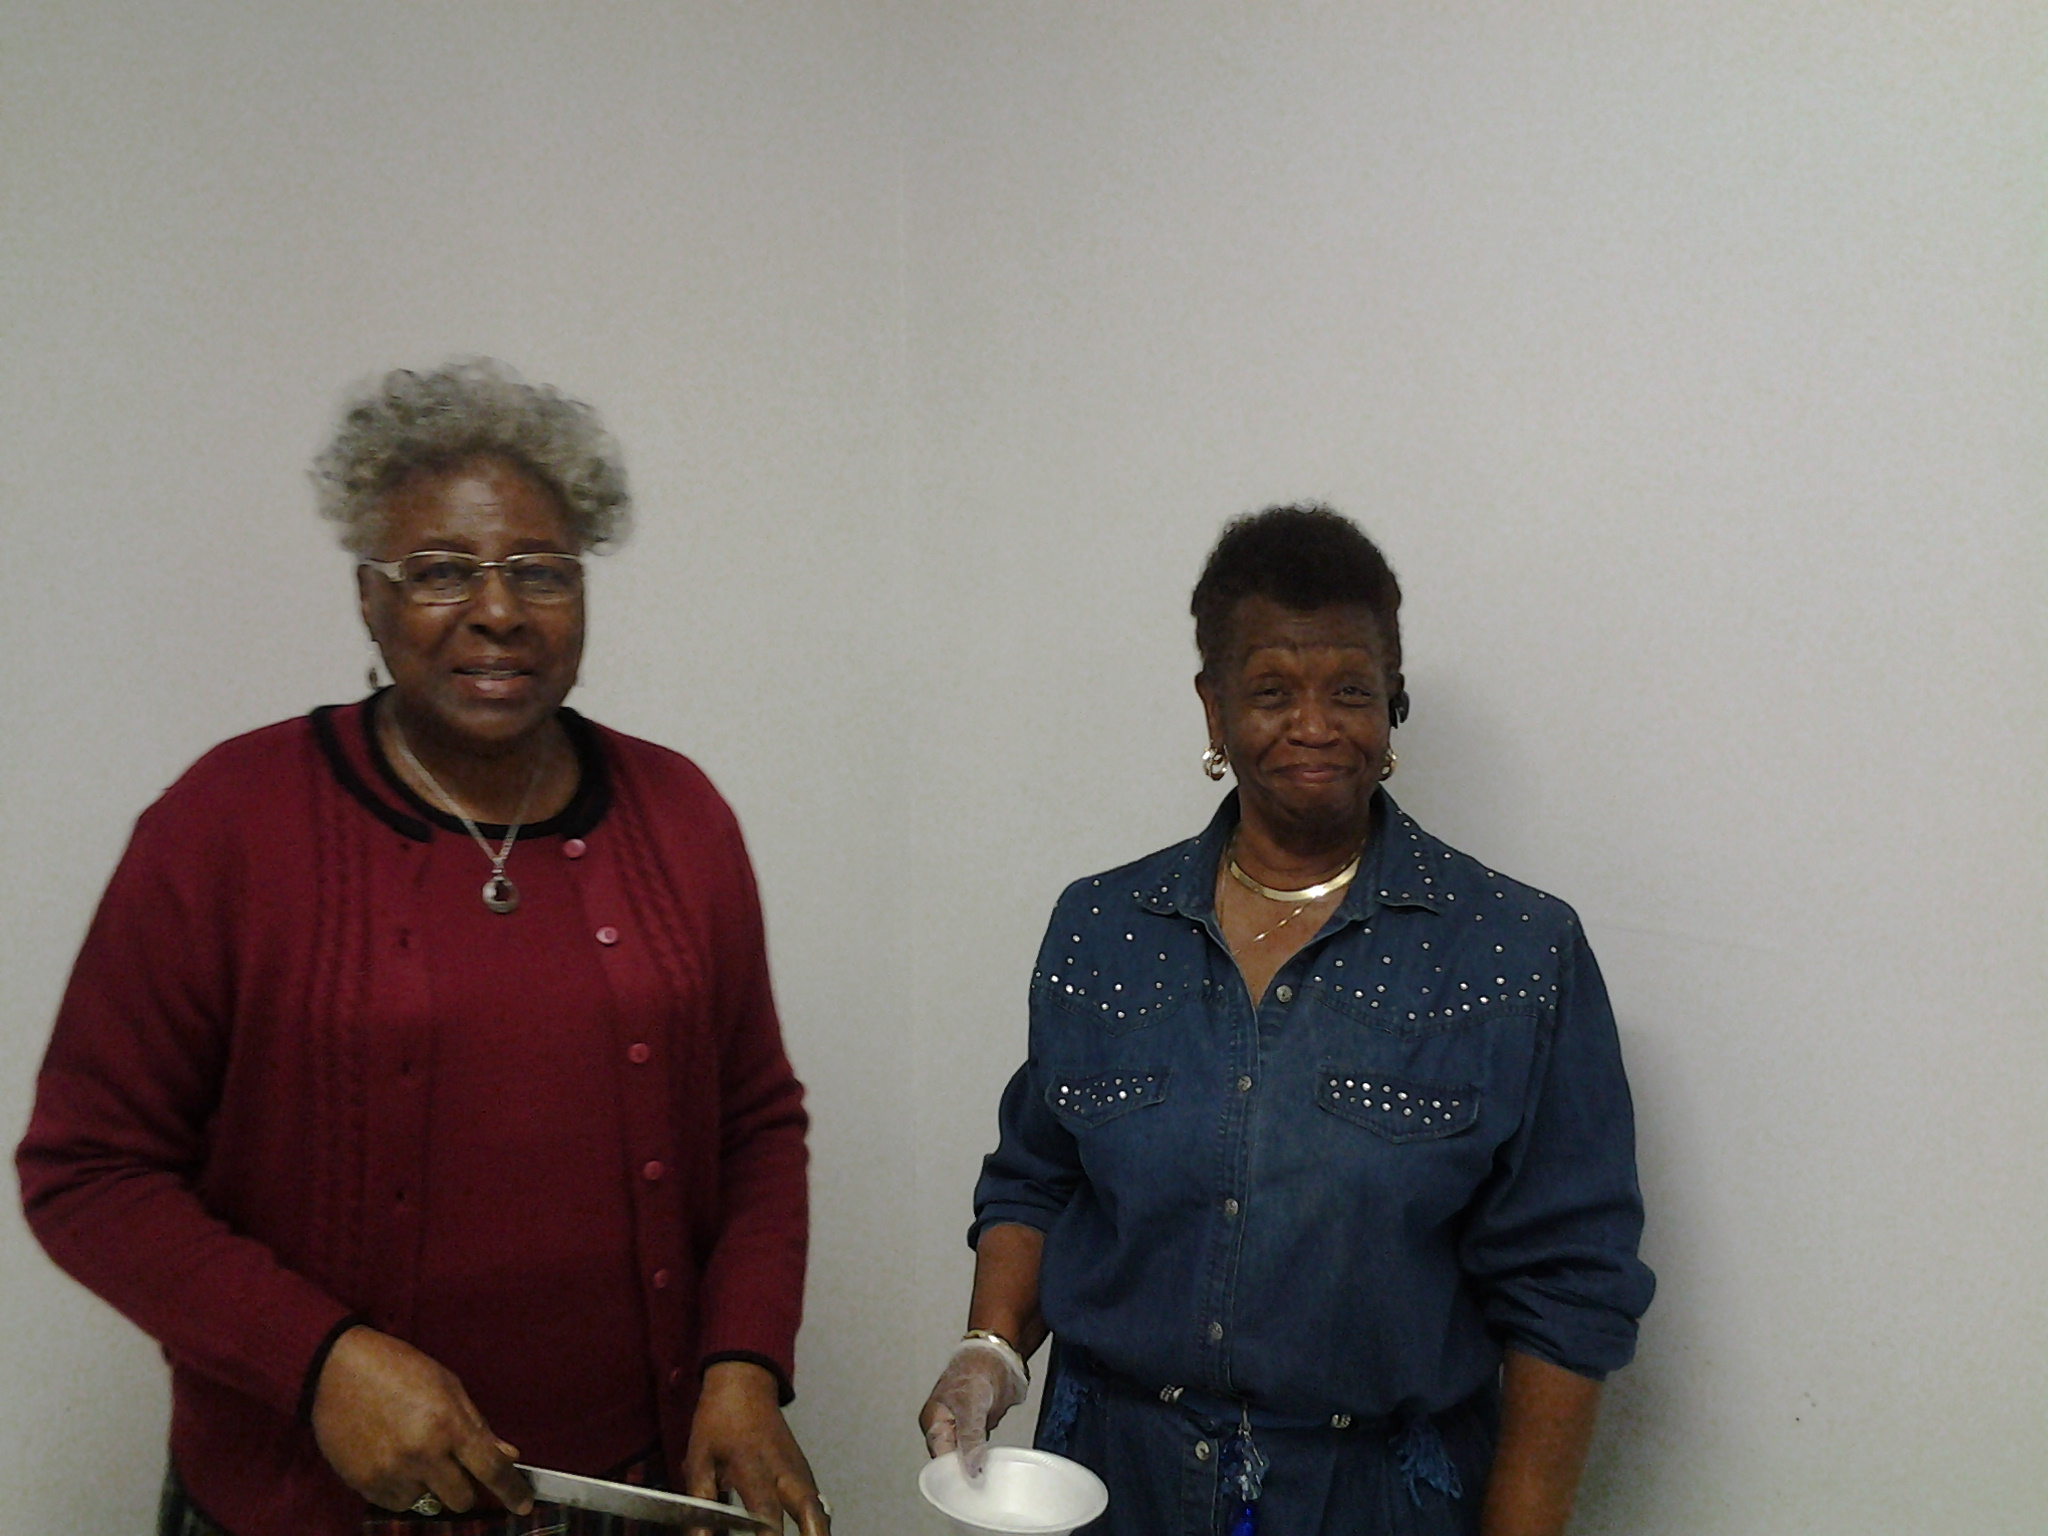 Sis Ethel Forest & Sis Janice Smith